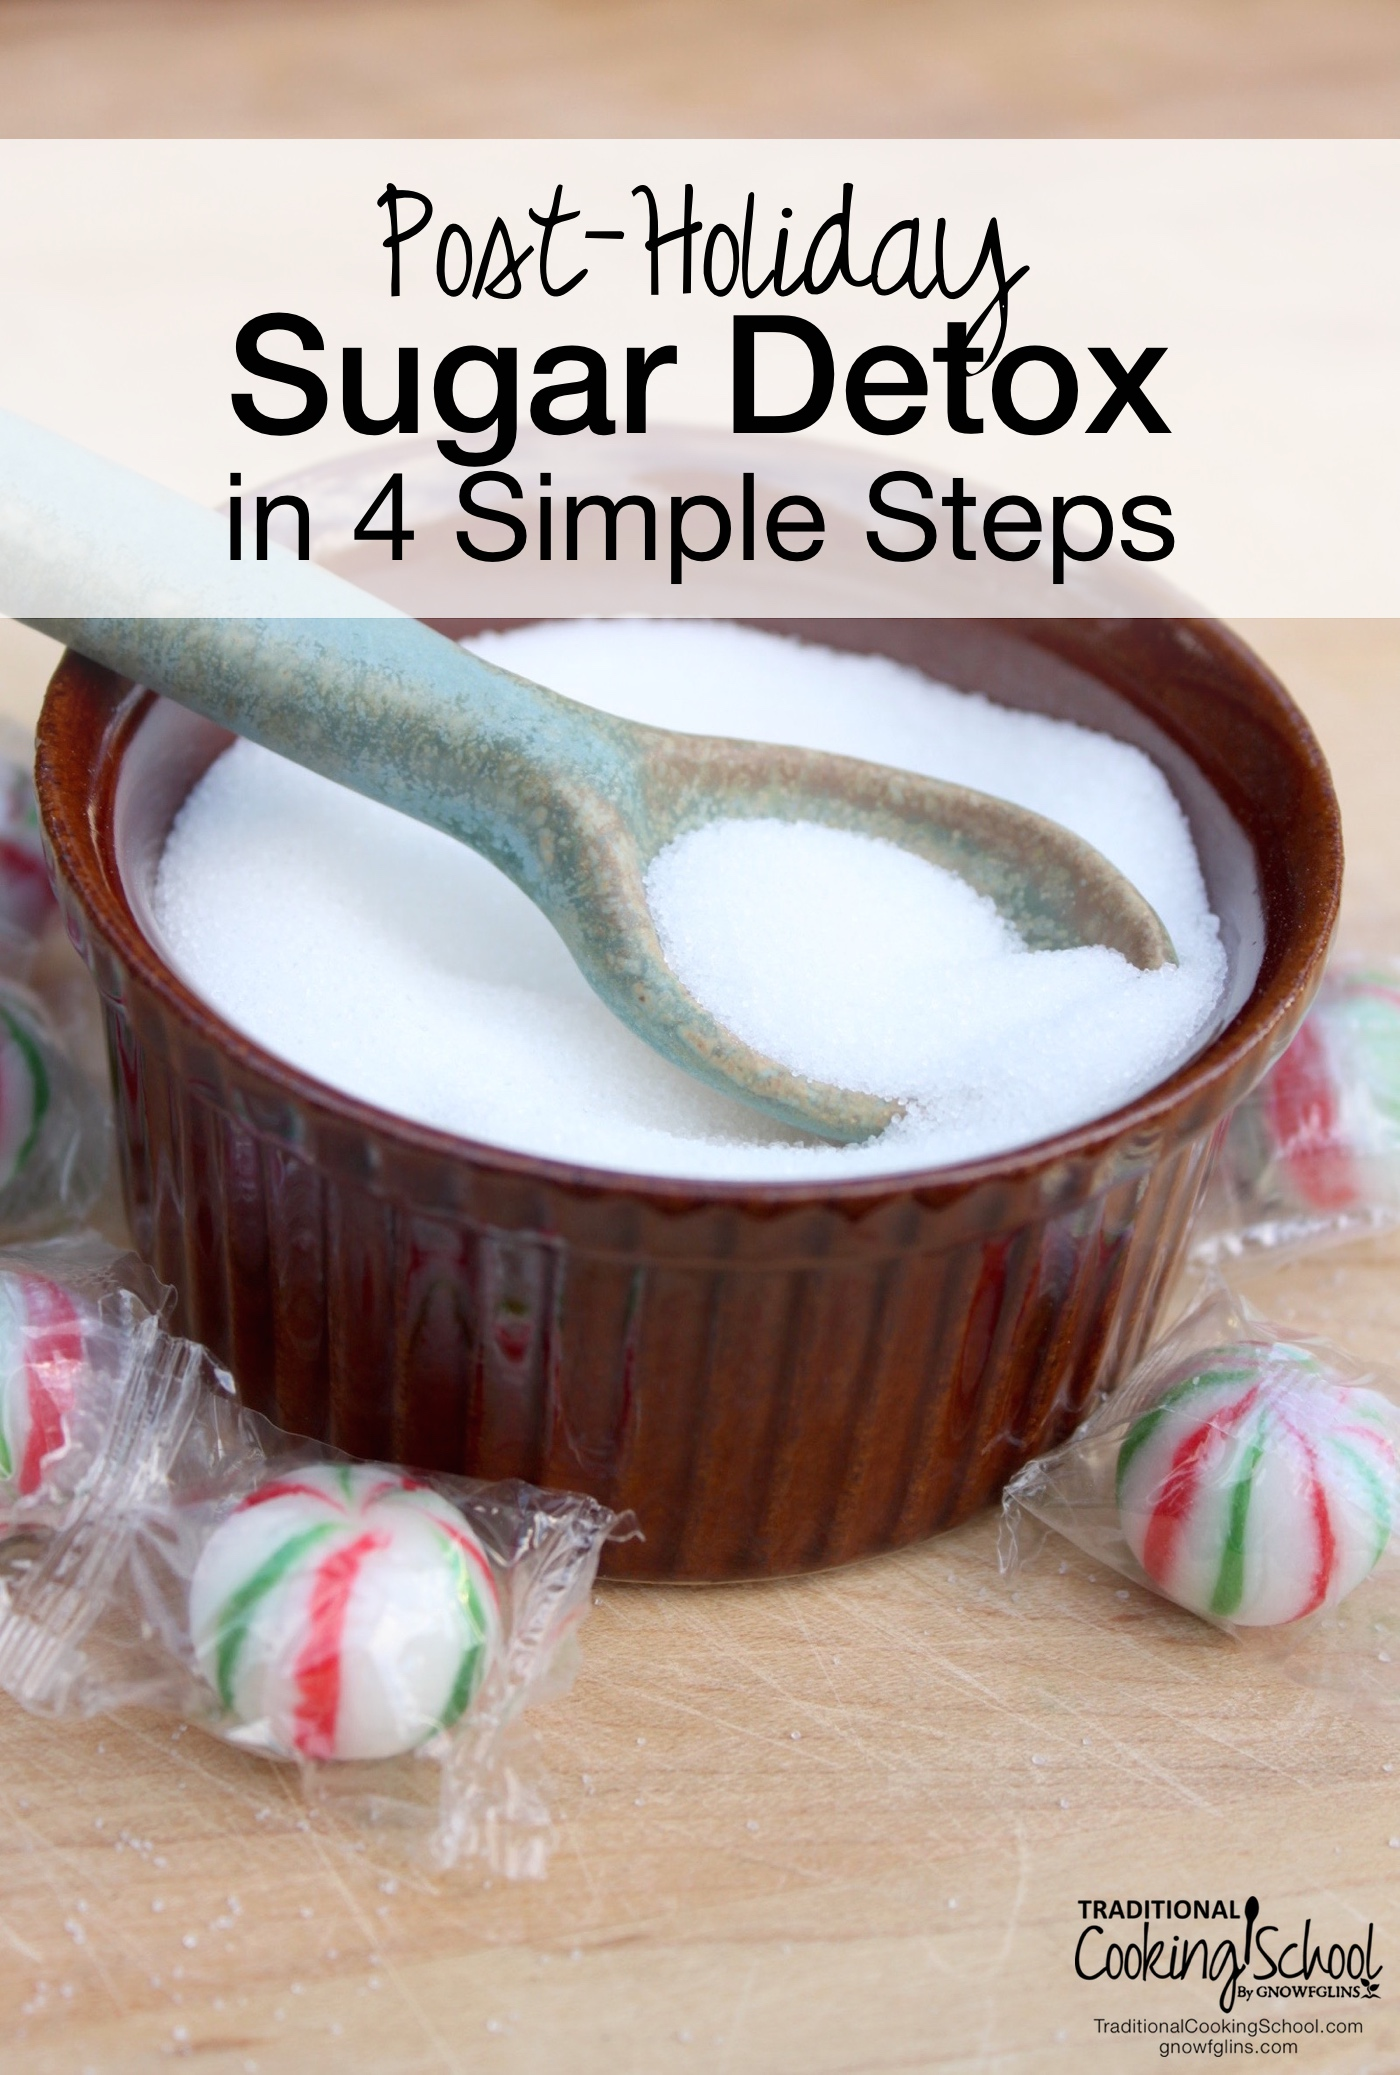 Post-Holiday Sugar Detox in 4 Simple Steps | Did you indulge in too many sweet treats over the holidays and now you're ready to start the new year on a healthier note? A short sugar detox can be the perfect reset button for our bodies. There are lots of hardcore, carb-cutting, intensive sugar detox programs out there, but if you are looking for an easy-to-follow, won't-make-you-crazy, gentle restart to healthier eating, you've come to the right place. Are you in? | TraditionalCookingSchool.com